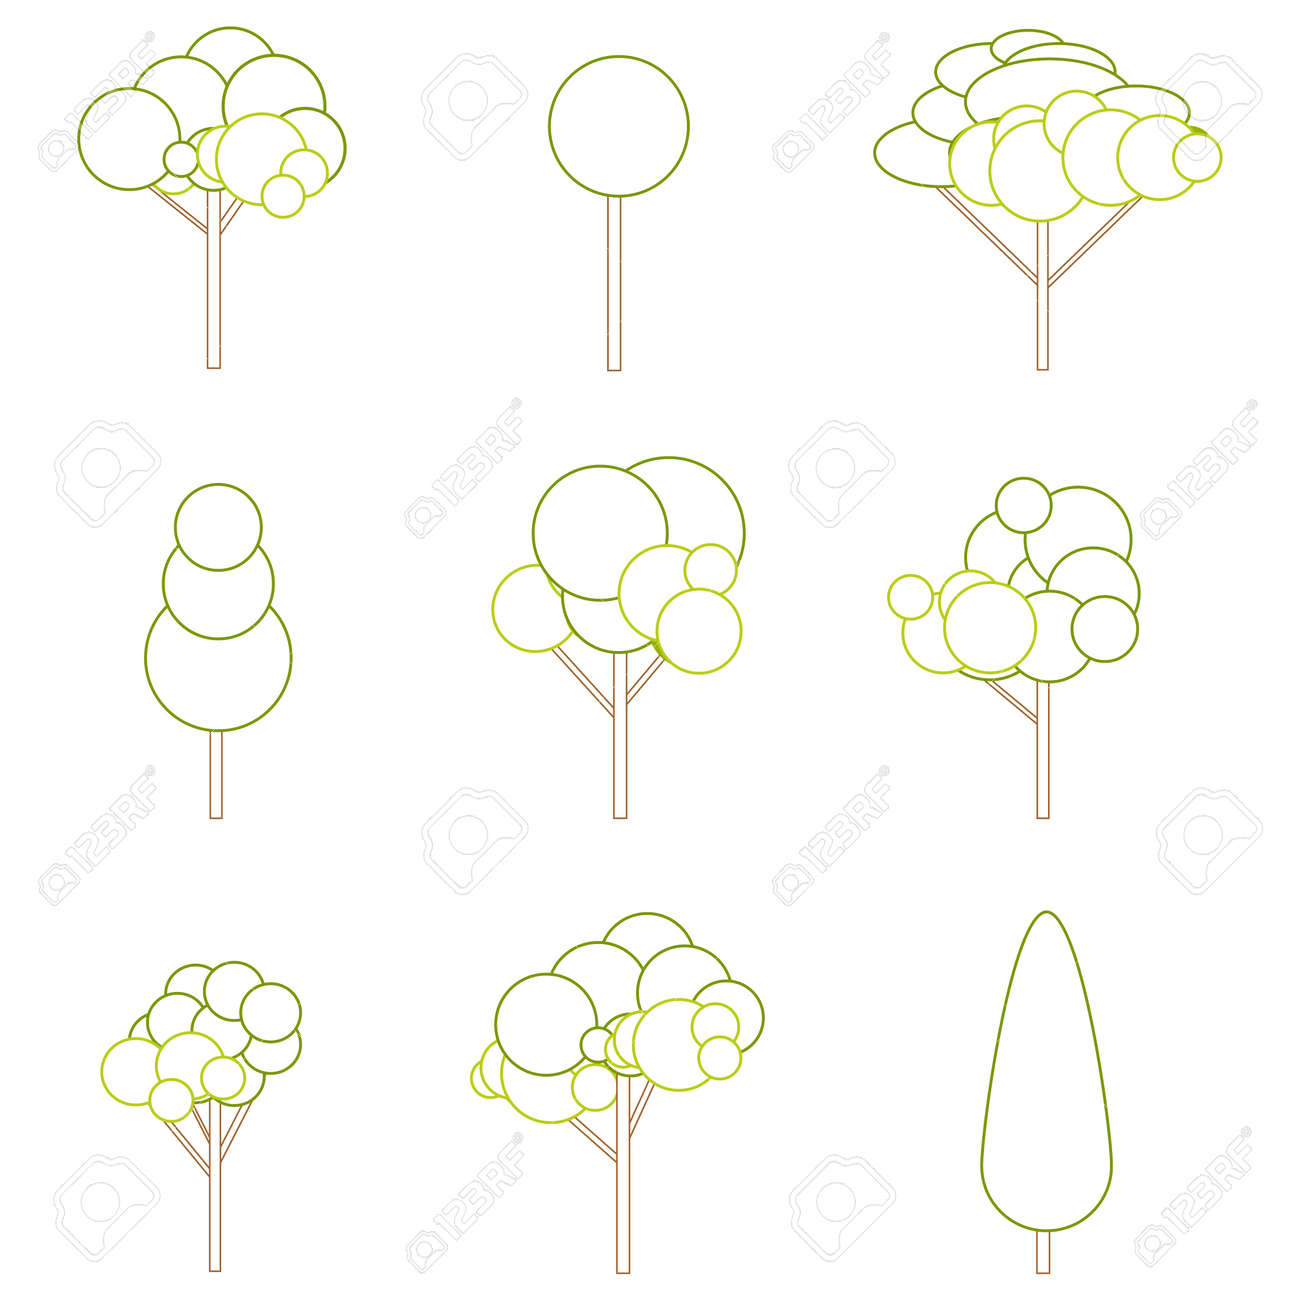 Tree sign, tree silhouettes icons set. Vector illustration. Vector. - 162890909